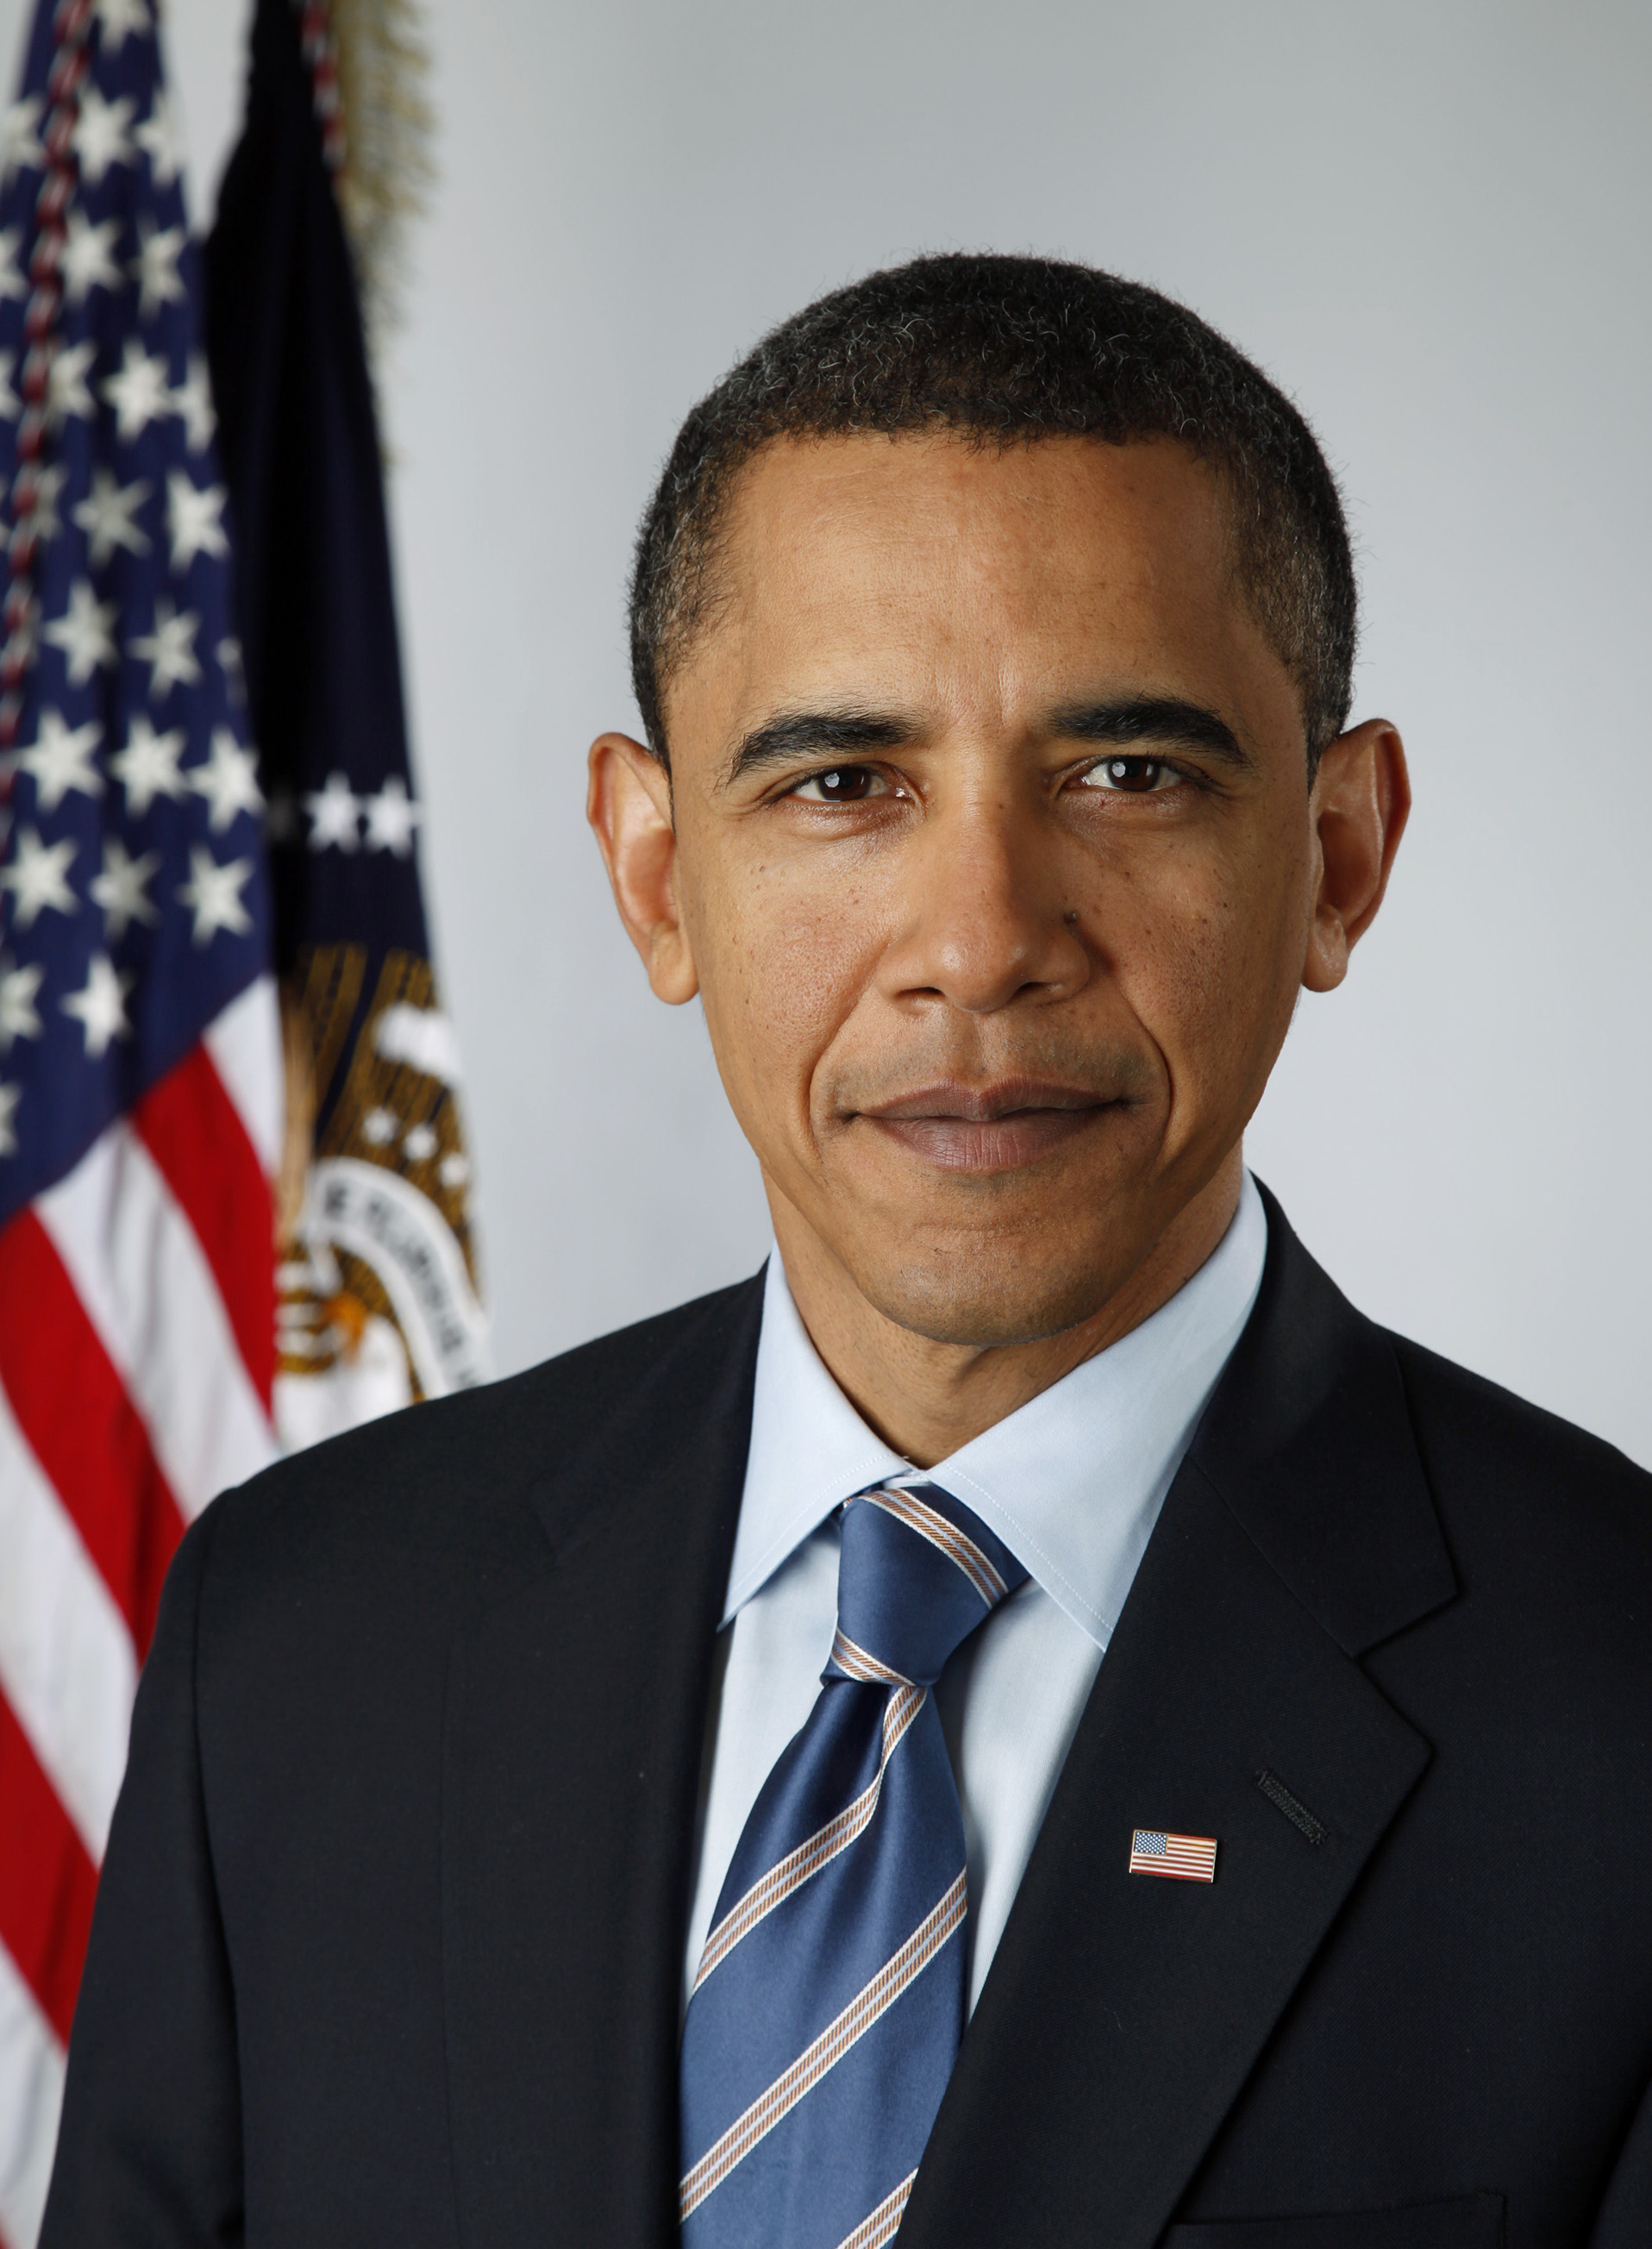 Obama Official Portrait SC Can an Oath of Office be Treason?